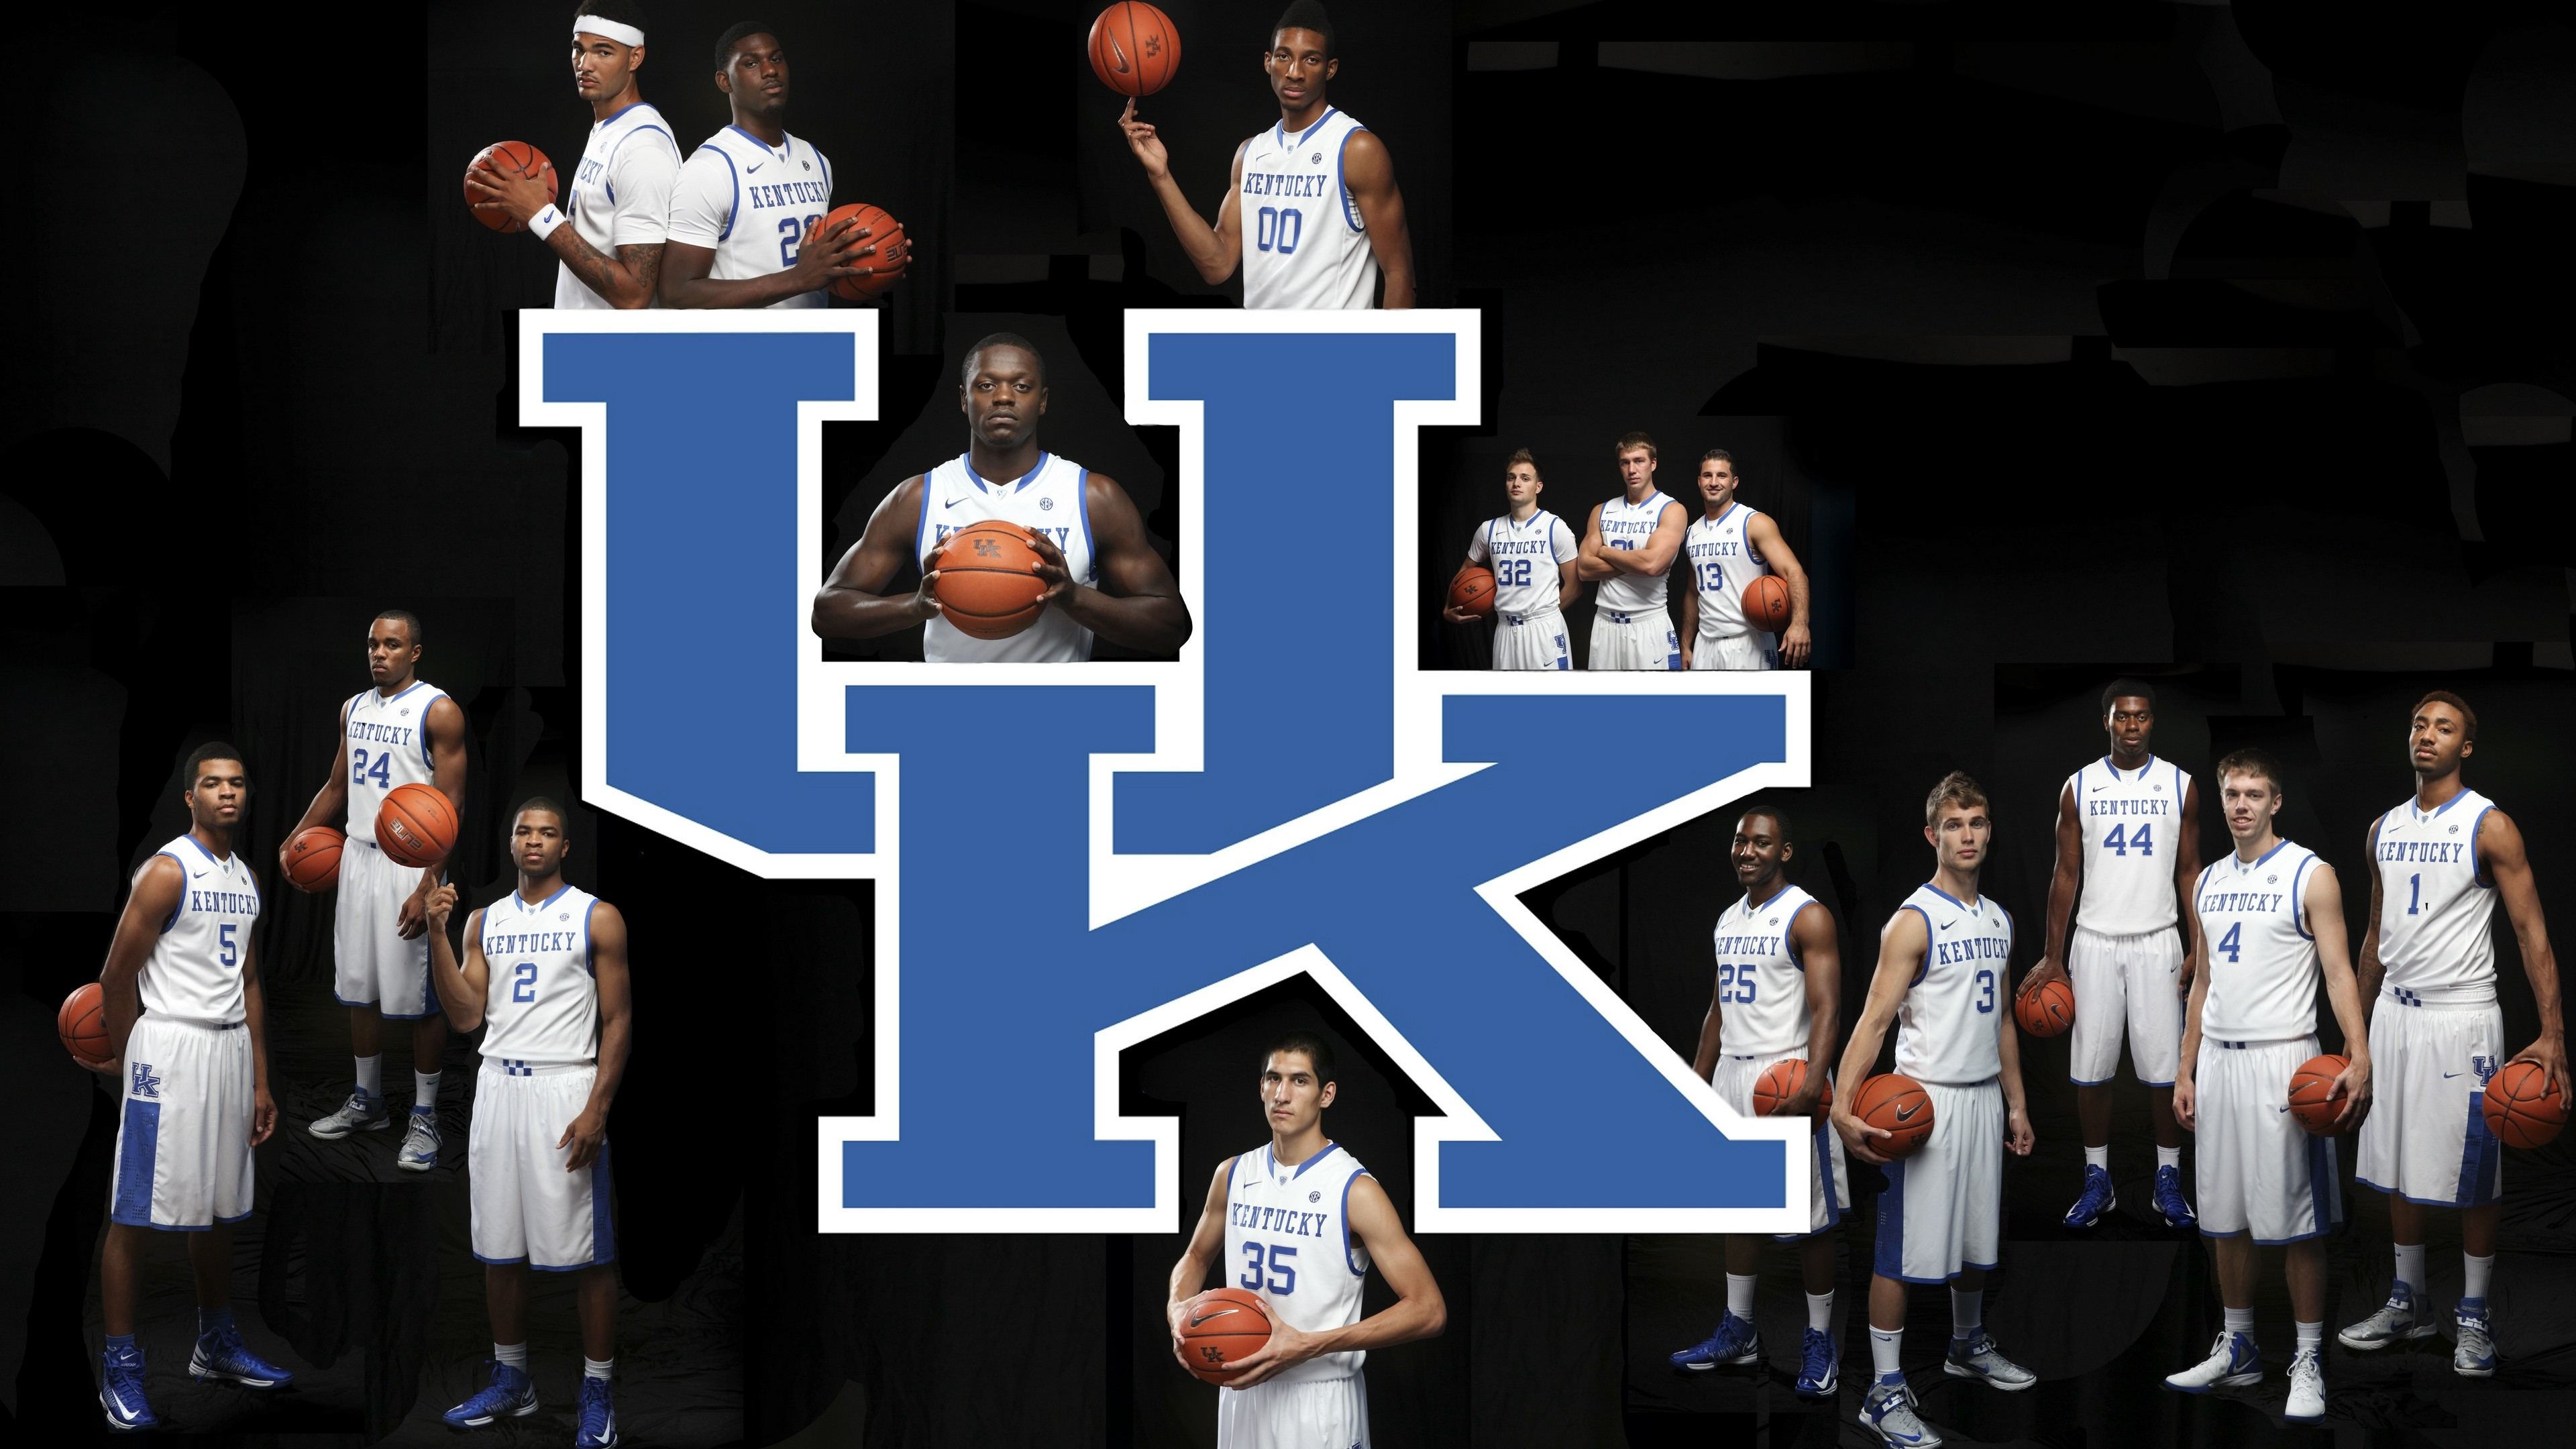 3840x2160  Wallpaper kentucky basketball, kentucky wildcats vs notre dame  fighting irish, wisconsin basketball,